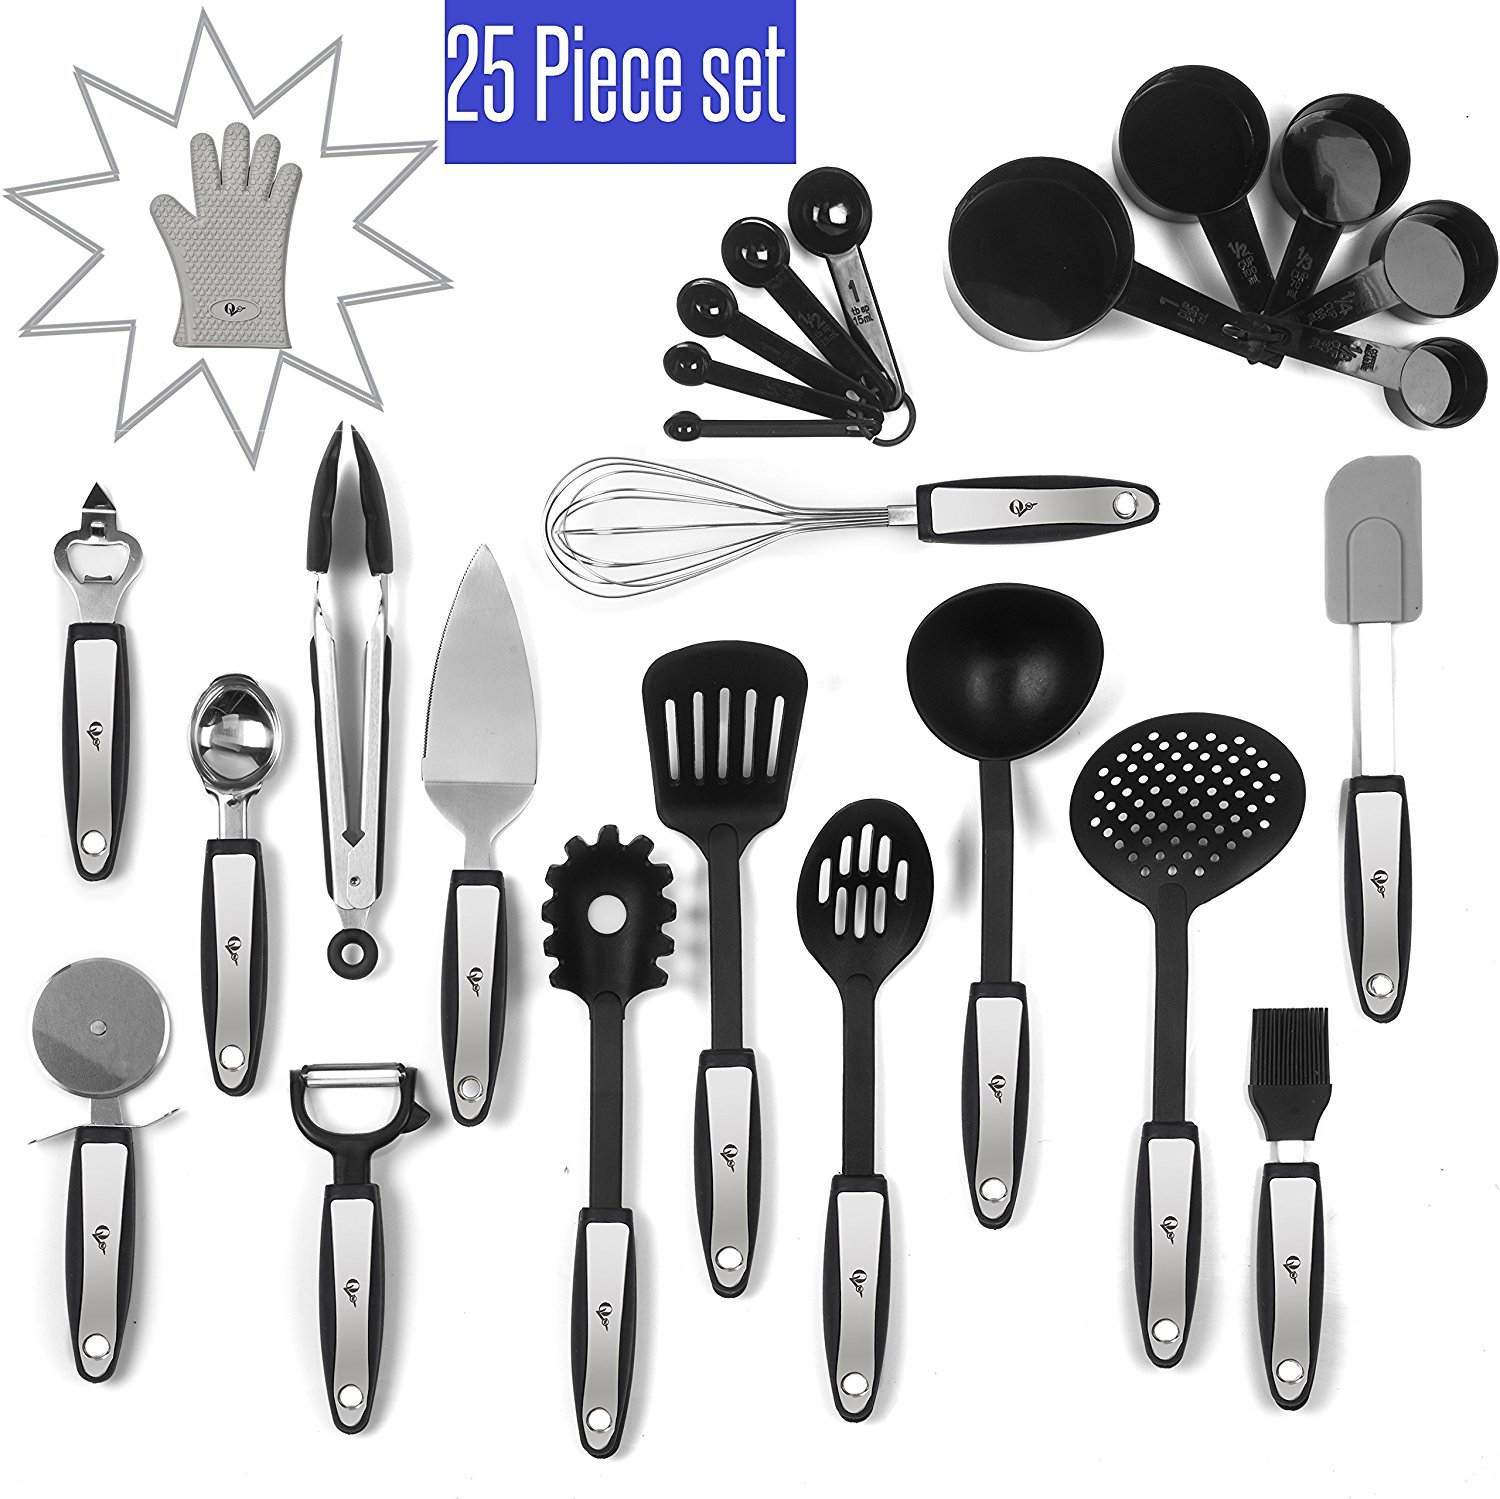 25 piece kitchen utensils set stainless steel and nylon for Kitchen set rate